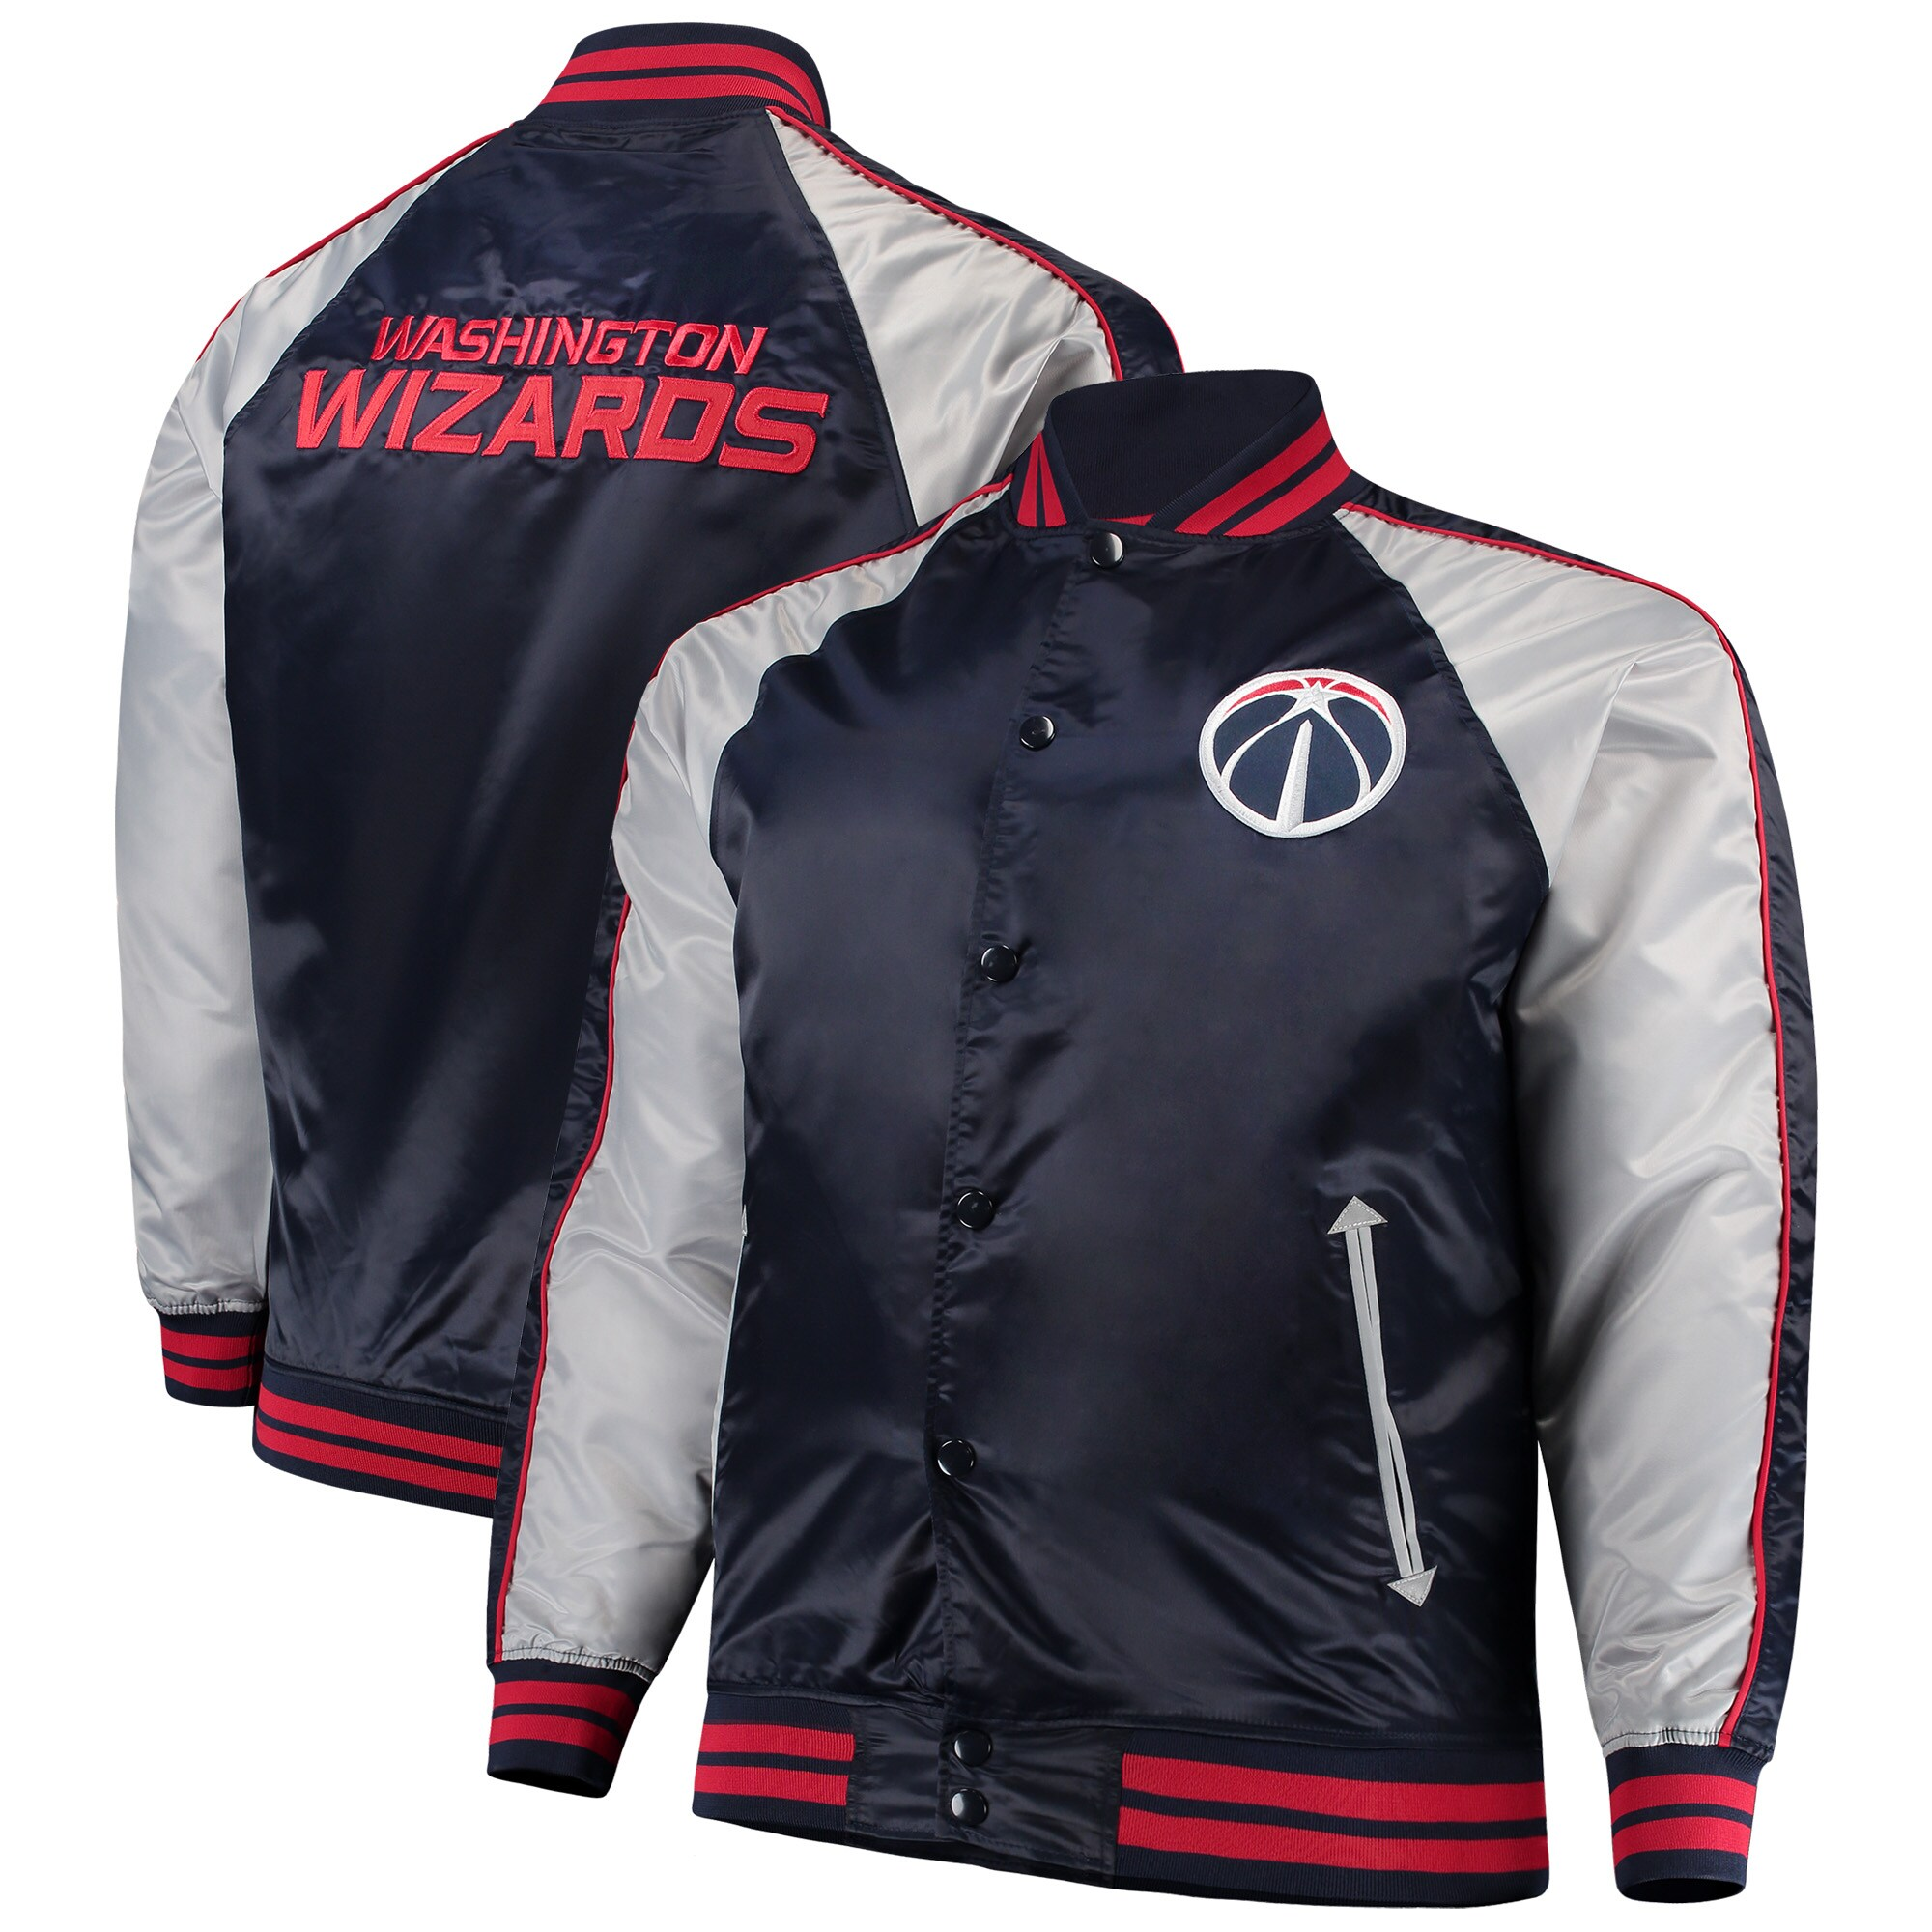 Washington Wizards Majestic Big & Tall Lightweight Satin Full-Snap Jacket - Navy